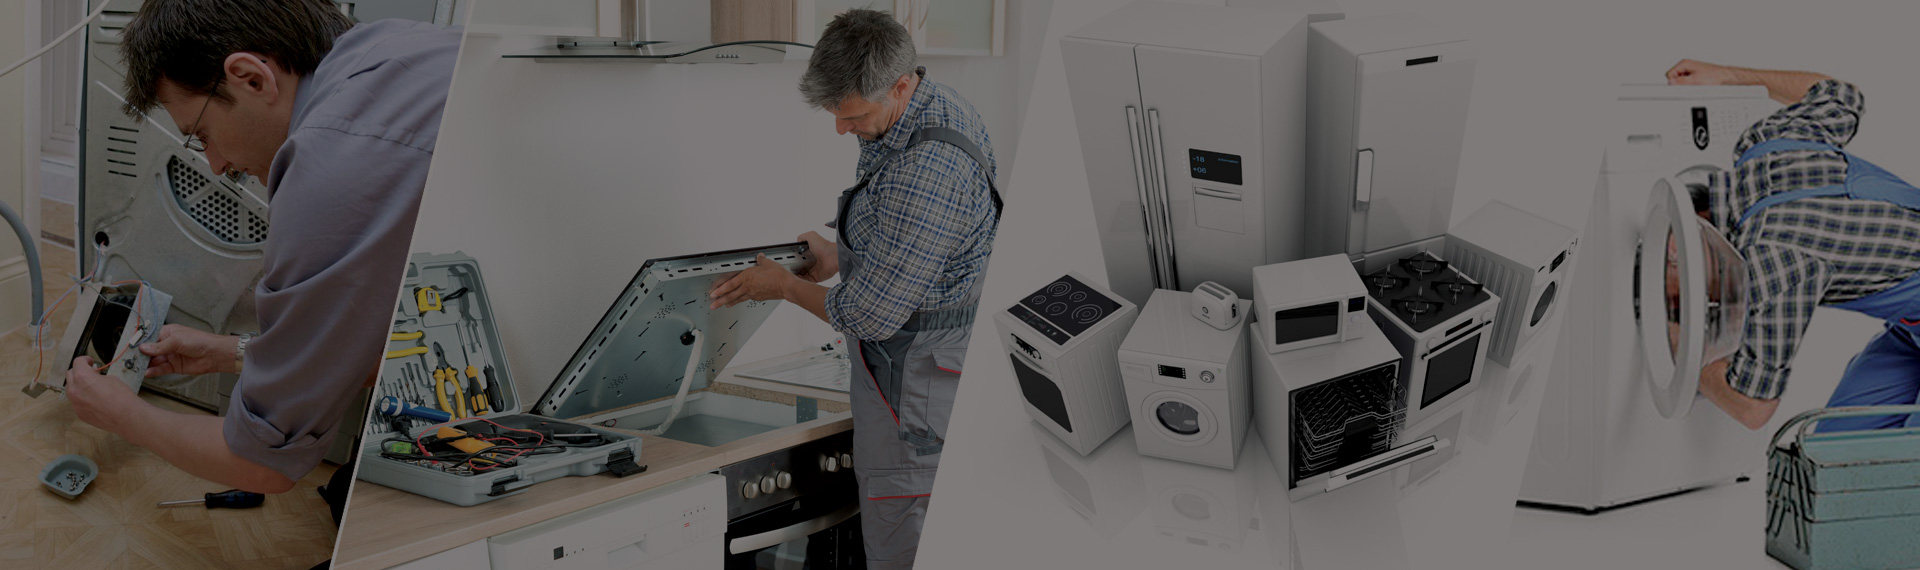 Teckrom Appliance Repair Rancho Santa Fe CA